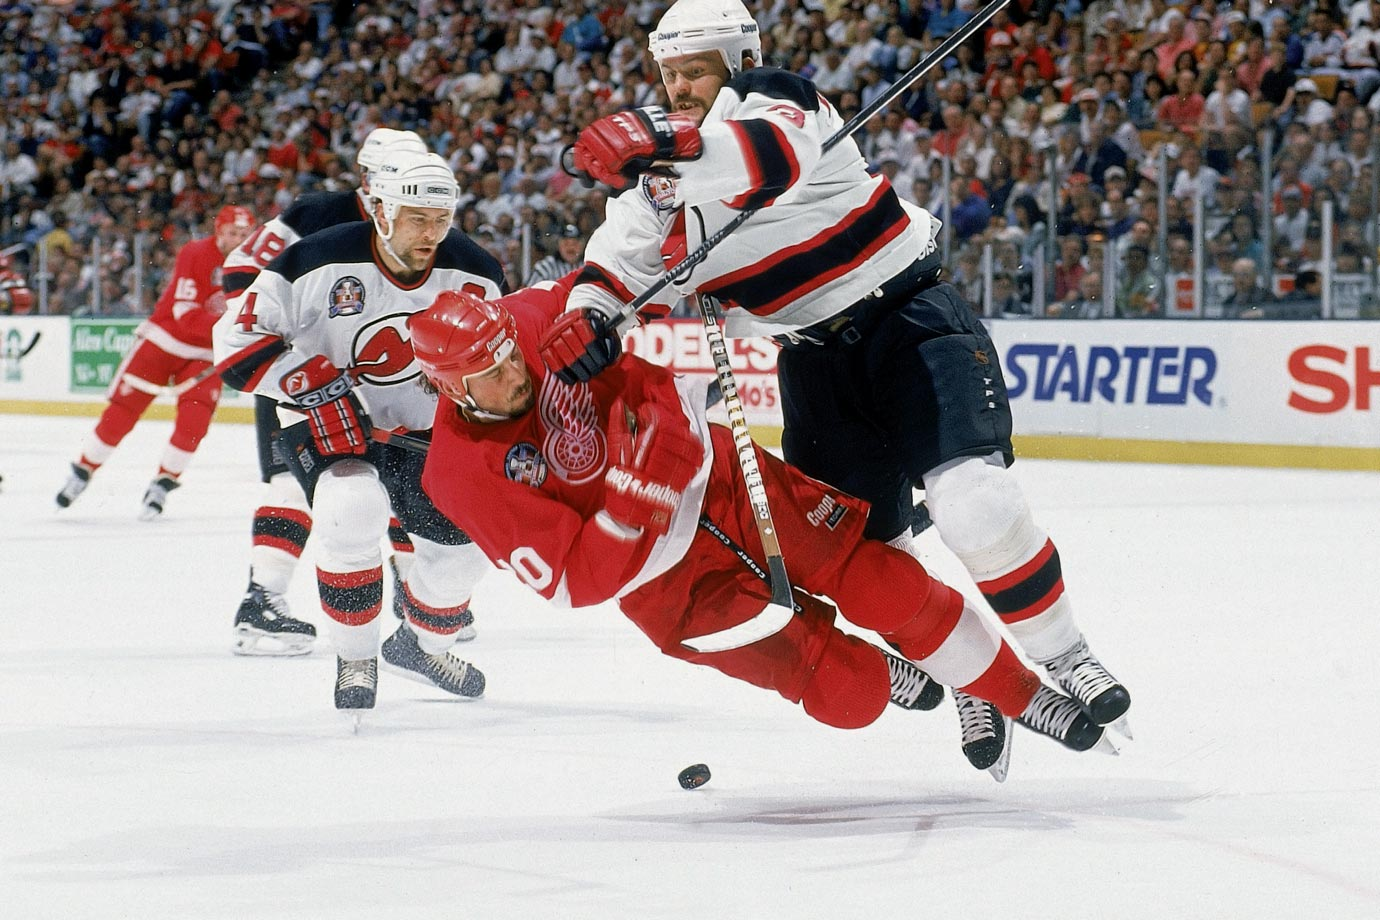 Bone-jarring defense has been a hallmark of New Jersey's three Stanley Cup championship teams, the first of which swept the Red Wings in the '95 final, thanks to hits like the one Devils blueliner Ken Daneyko delivered to Detroit's Martin Lapointe in Game 3.